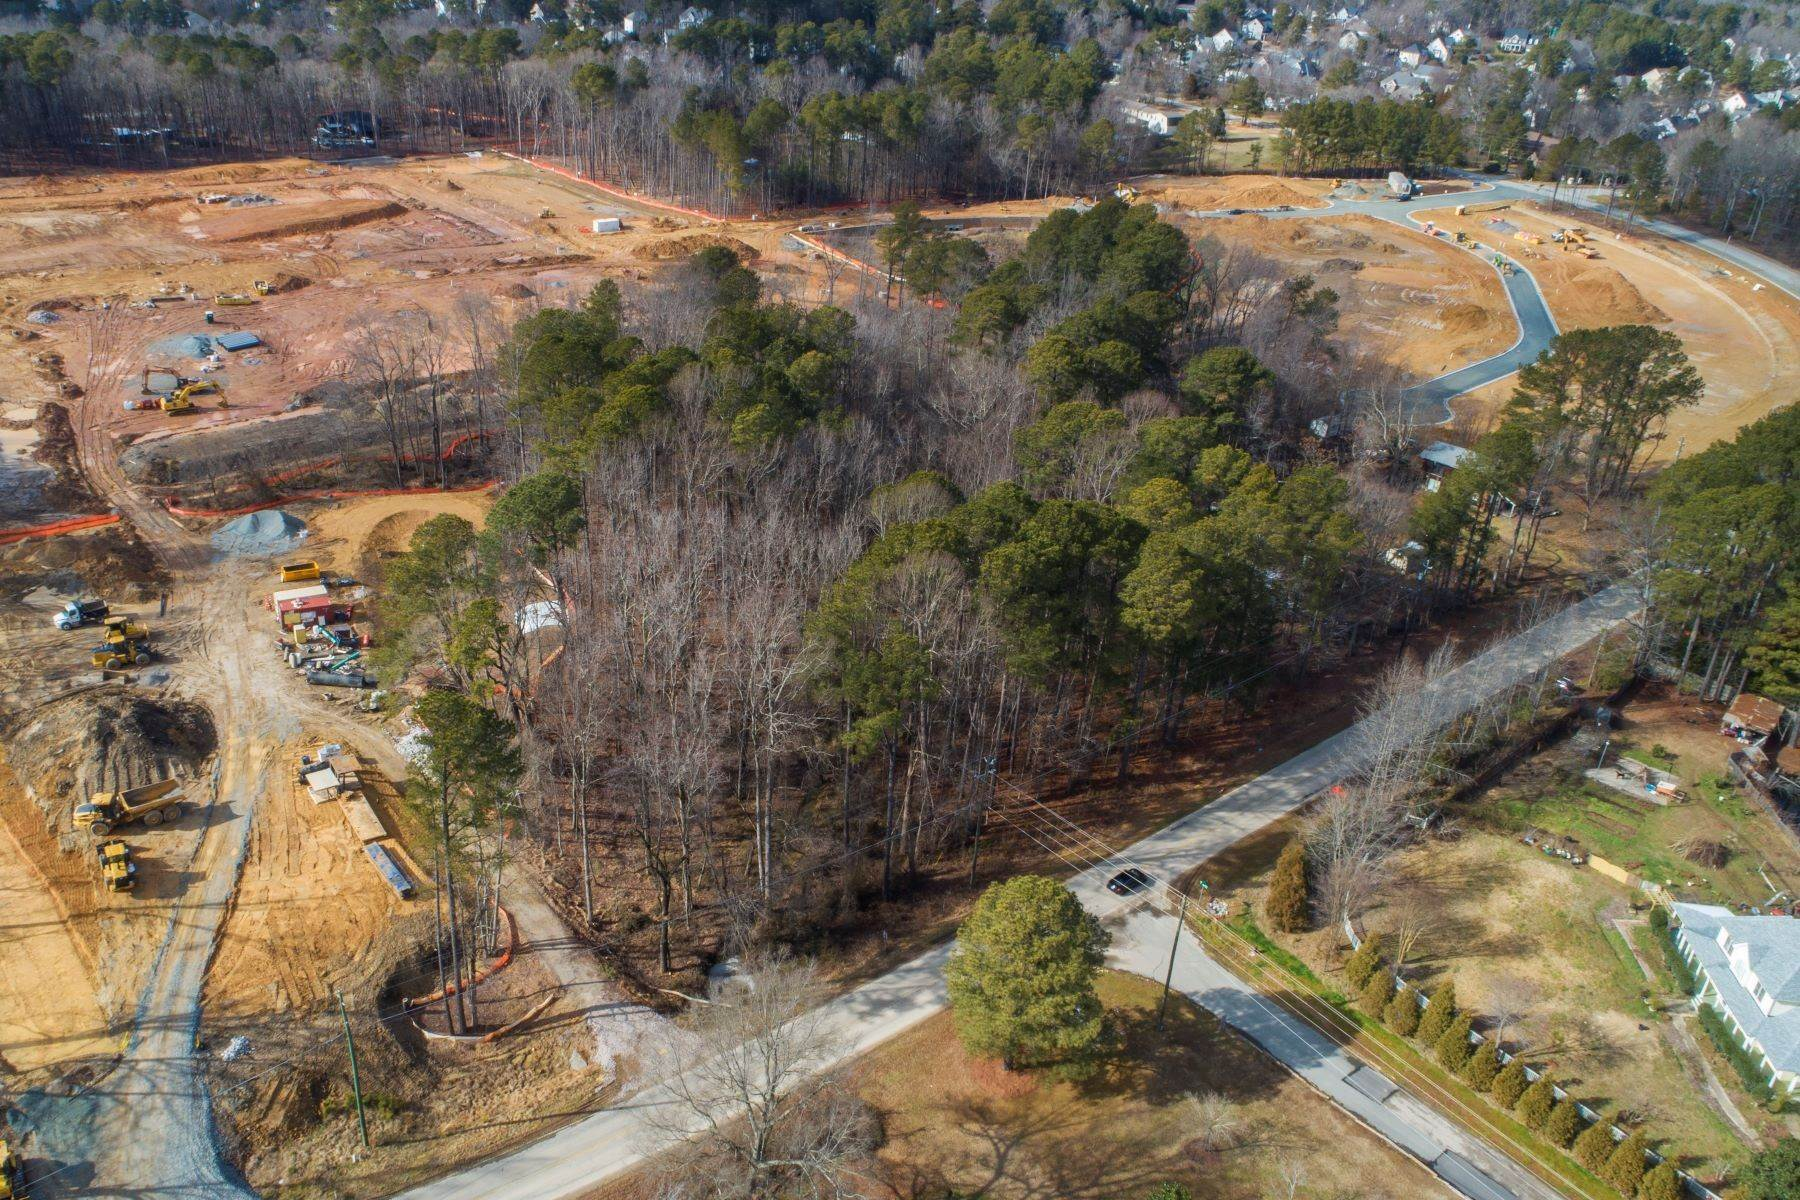 Land for Sale at 1305 Holt Rd-Apex Acreage 1305 Holt Rd Apex, North Carolina 27523 United States